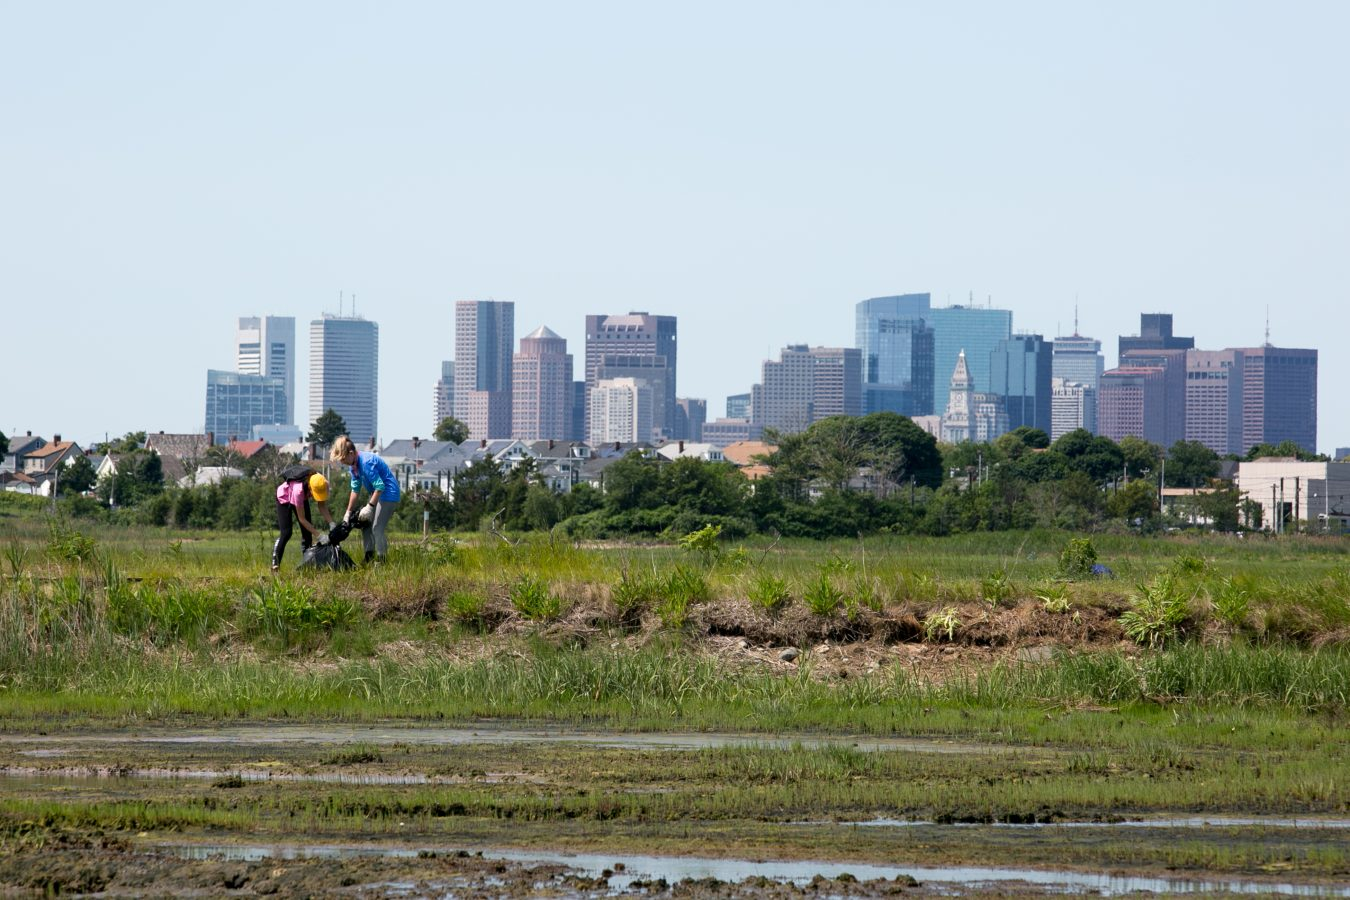 two people pick up trash at Belle Isle Reservation with the Boston skyline in the background.